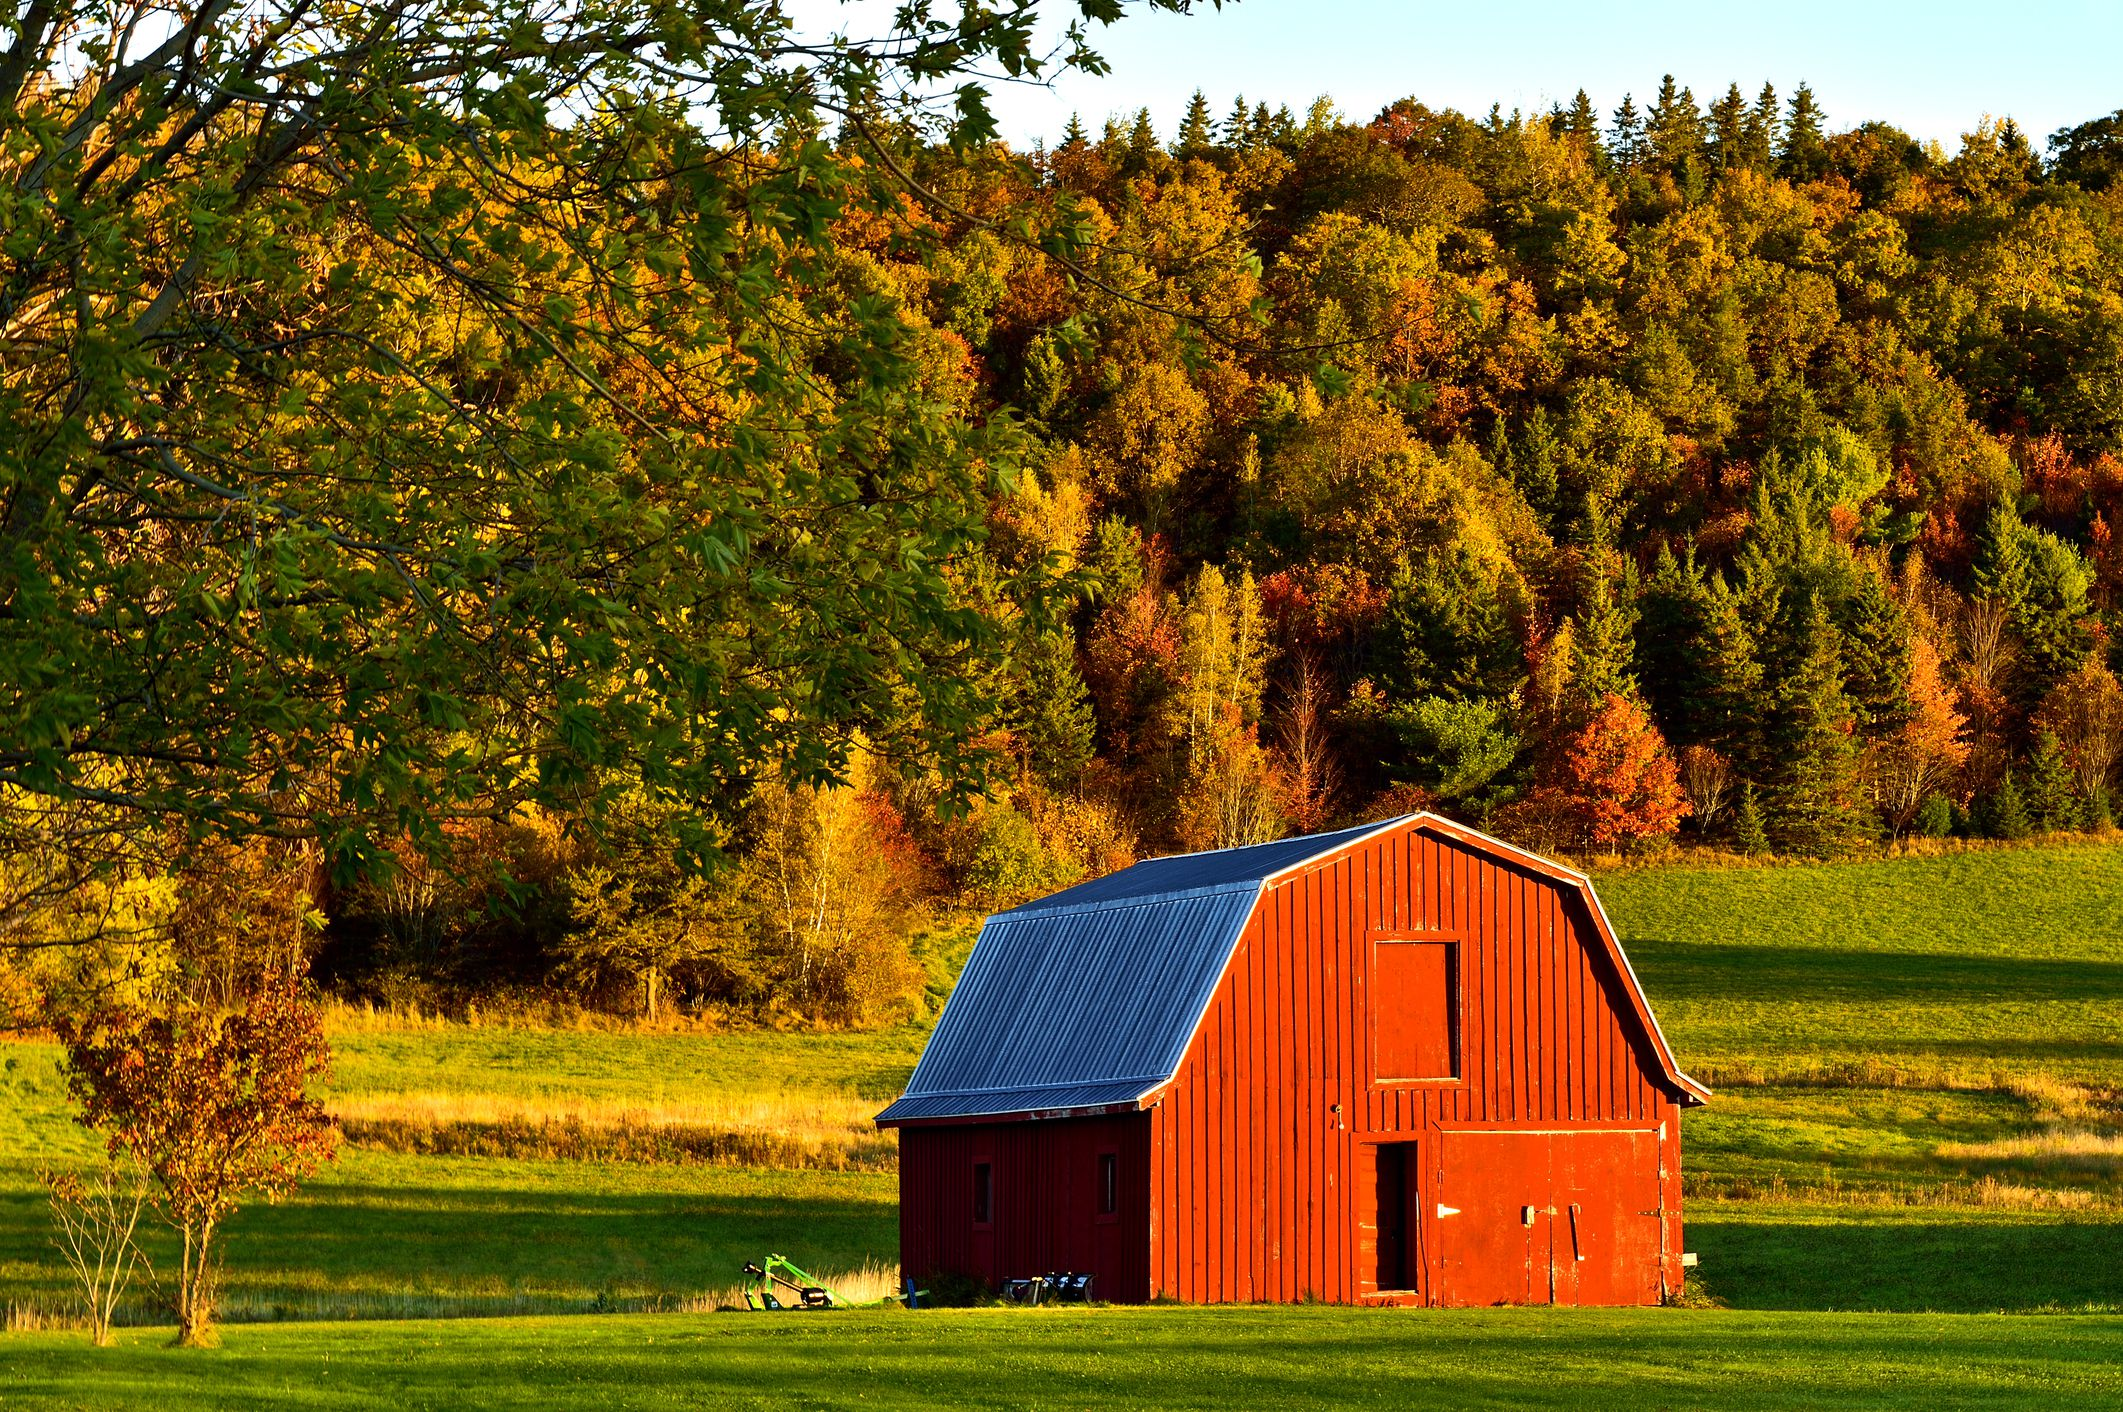 A horizontal image of a red barn on a green meadow with colorful hardwood trees as a background on a farm in rural New Brunswick Canada